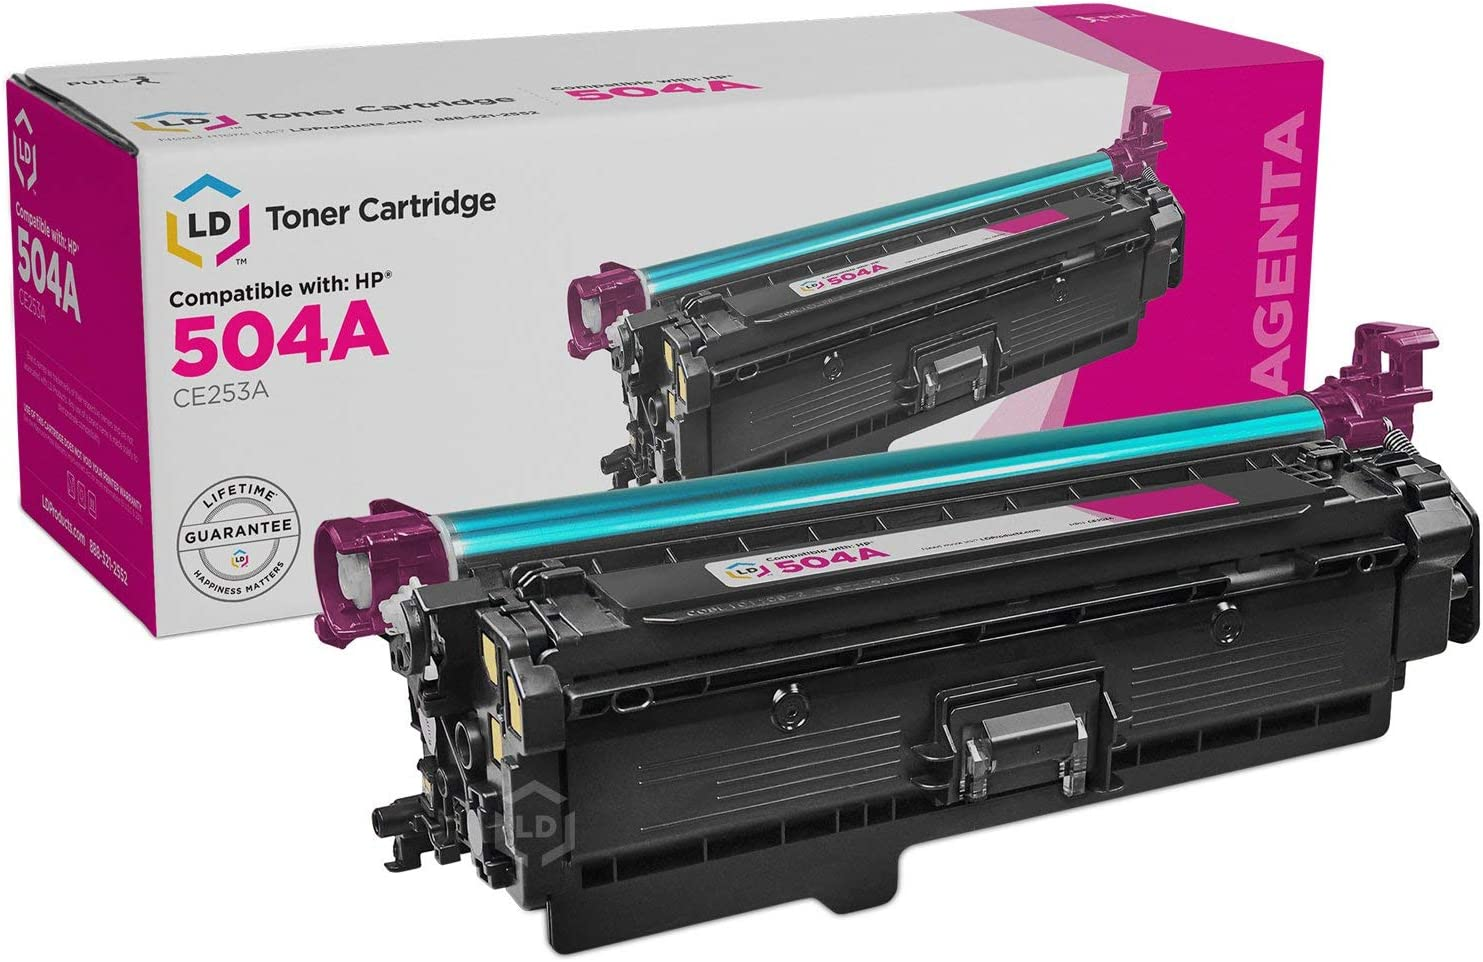 LD Remanufactured Toner Cartridge Replacement for HP 504A CE253A (Magenta)